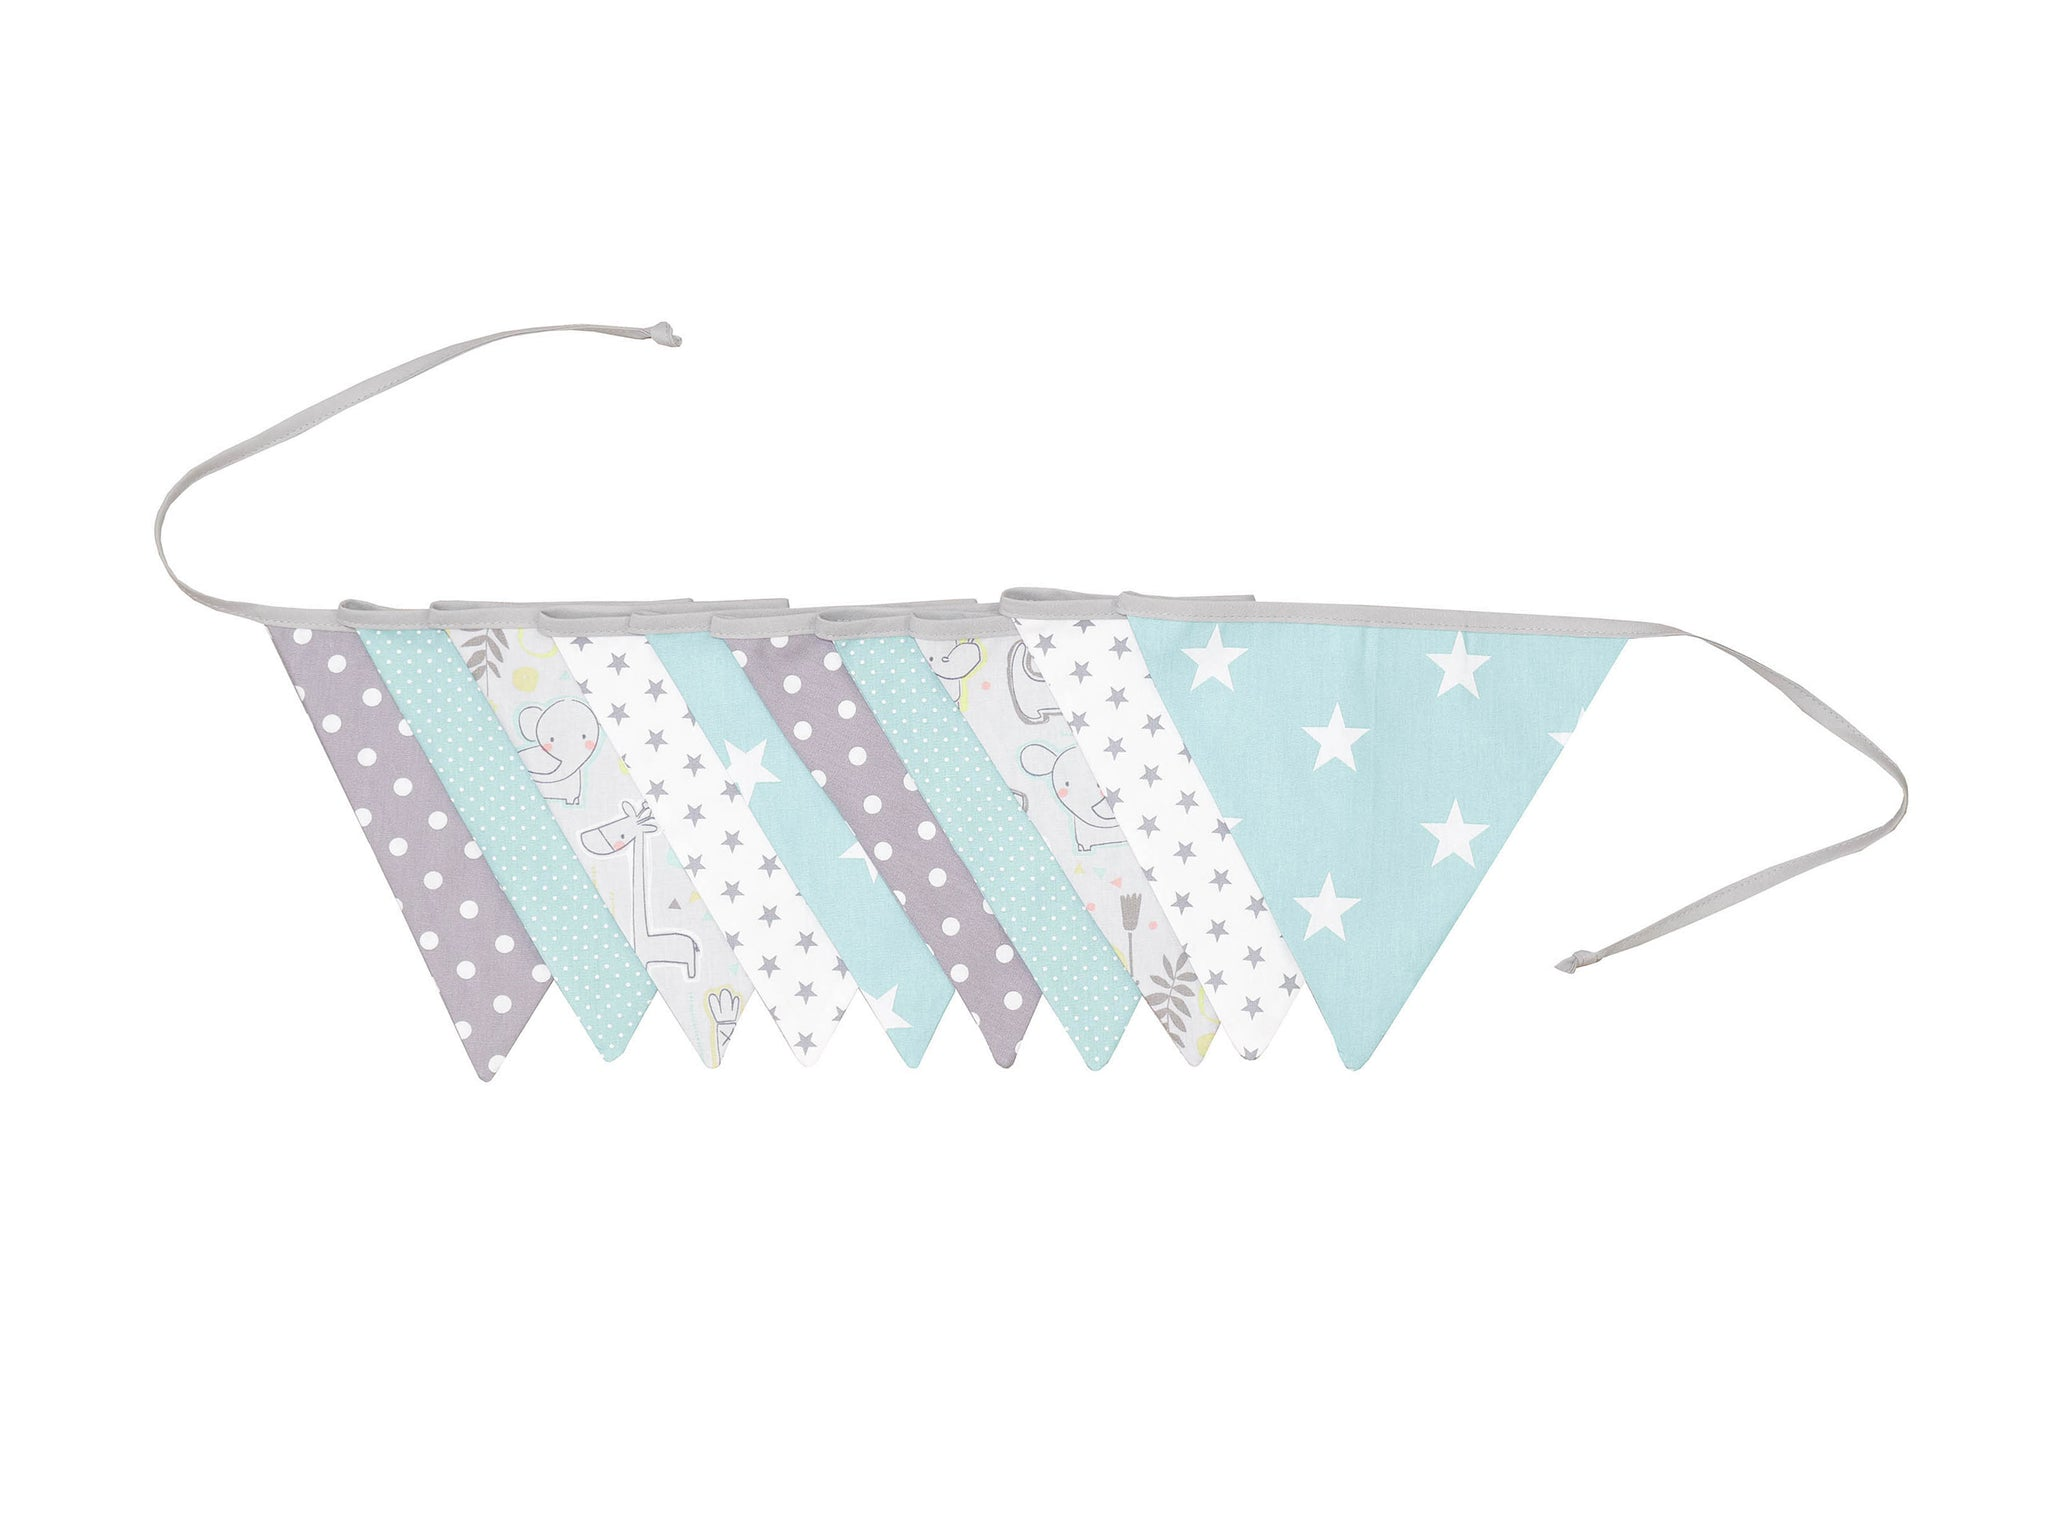 Fabric Banner Nursery Decor – Pennant Banner Decoration, Safari Peppermint, 11 ft.